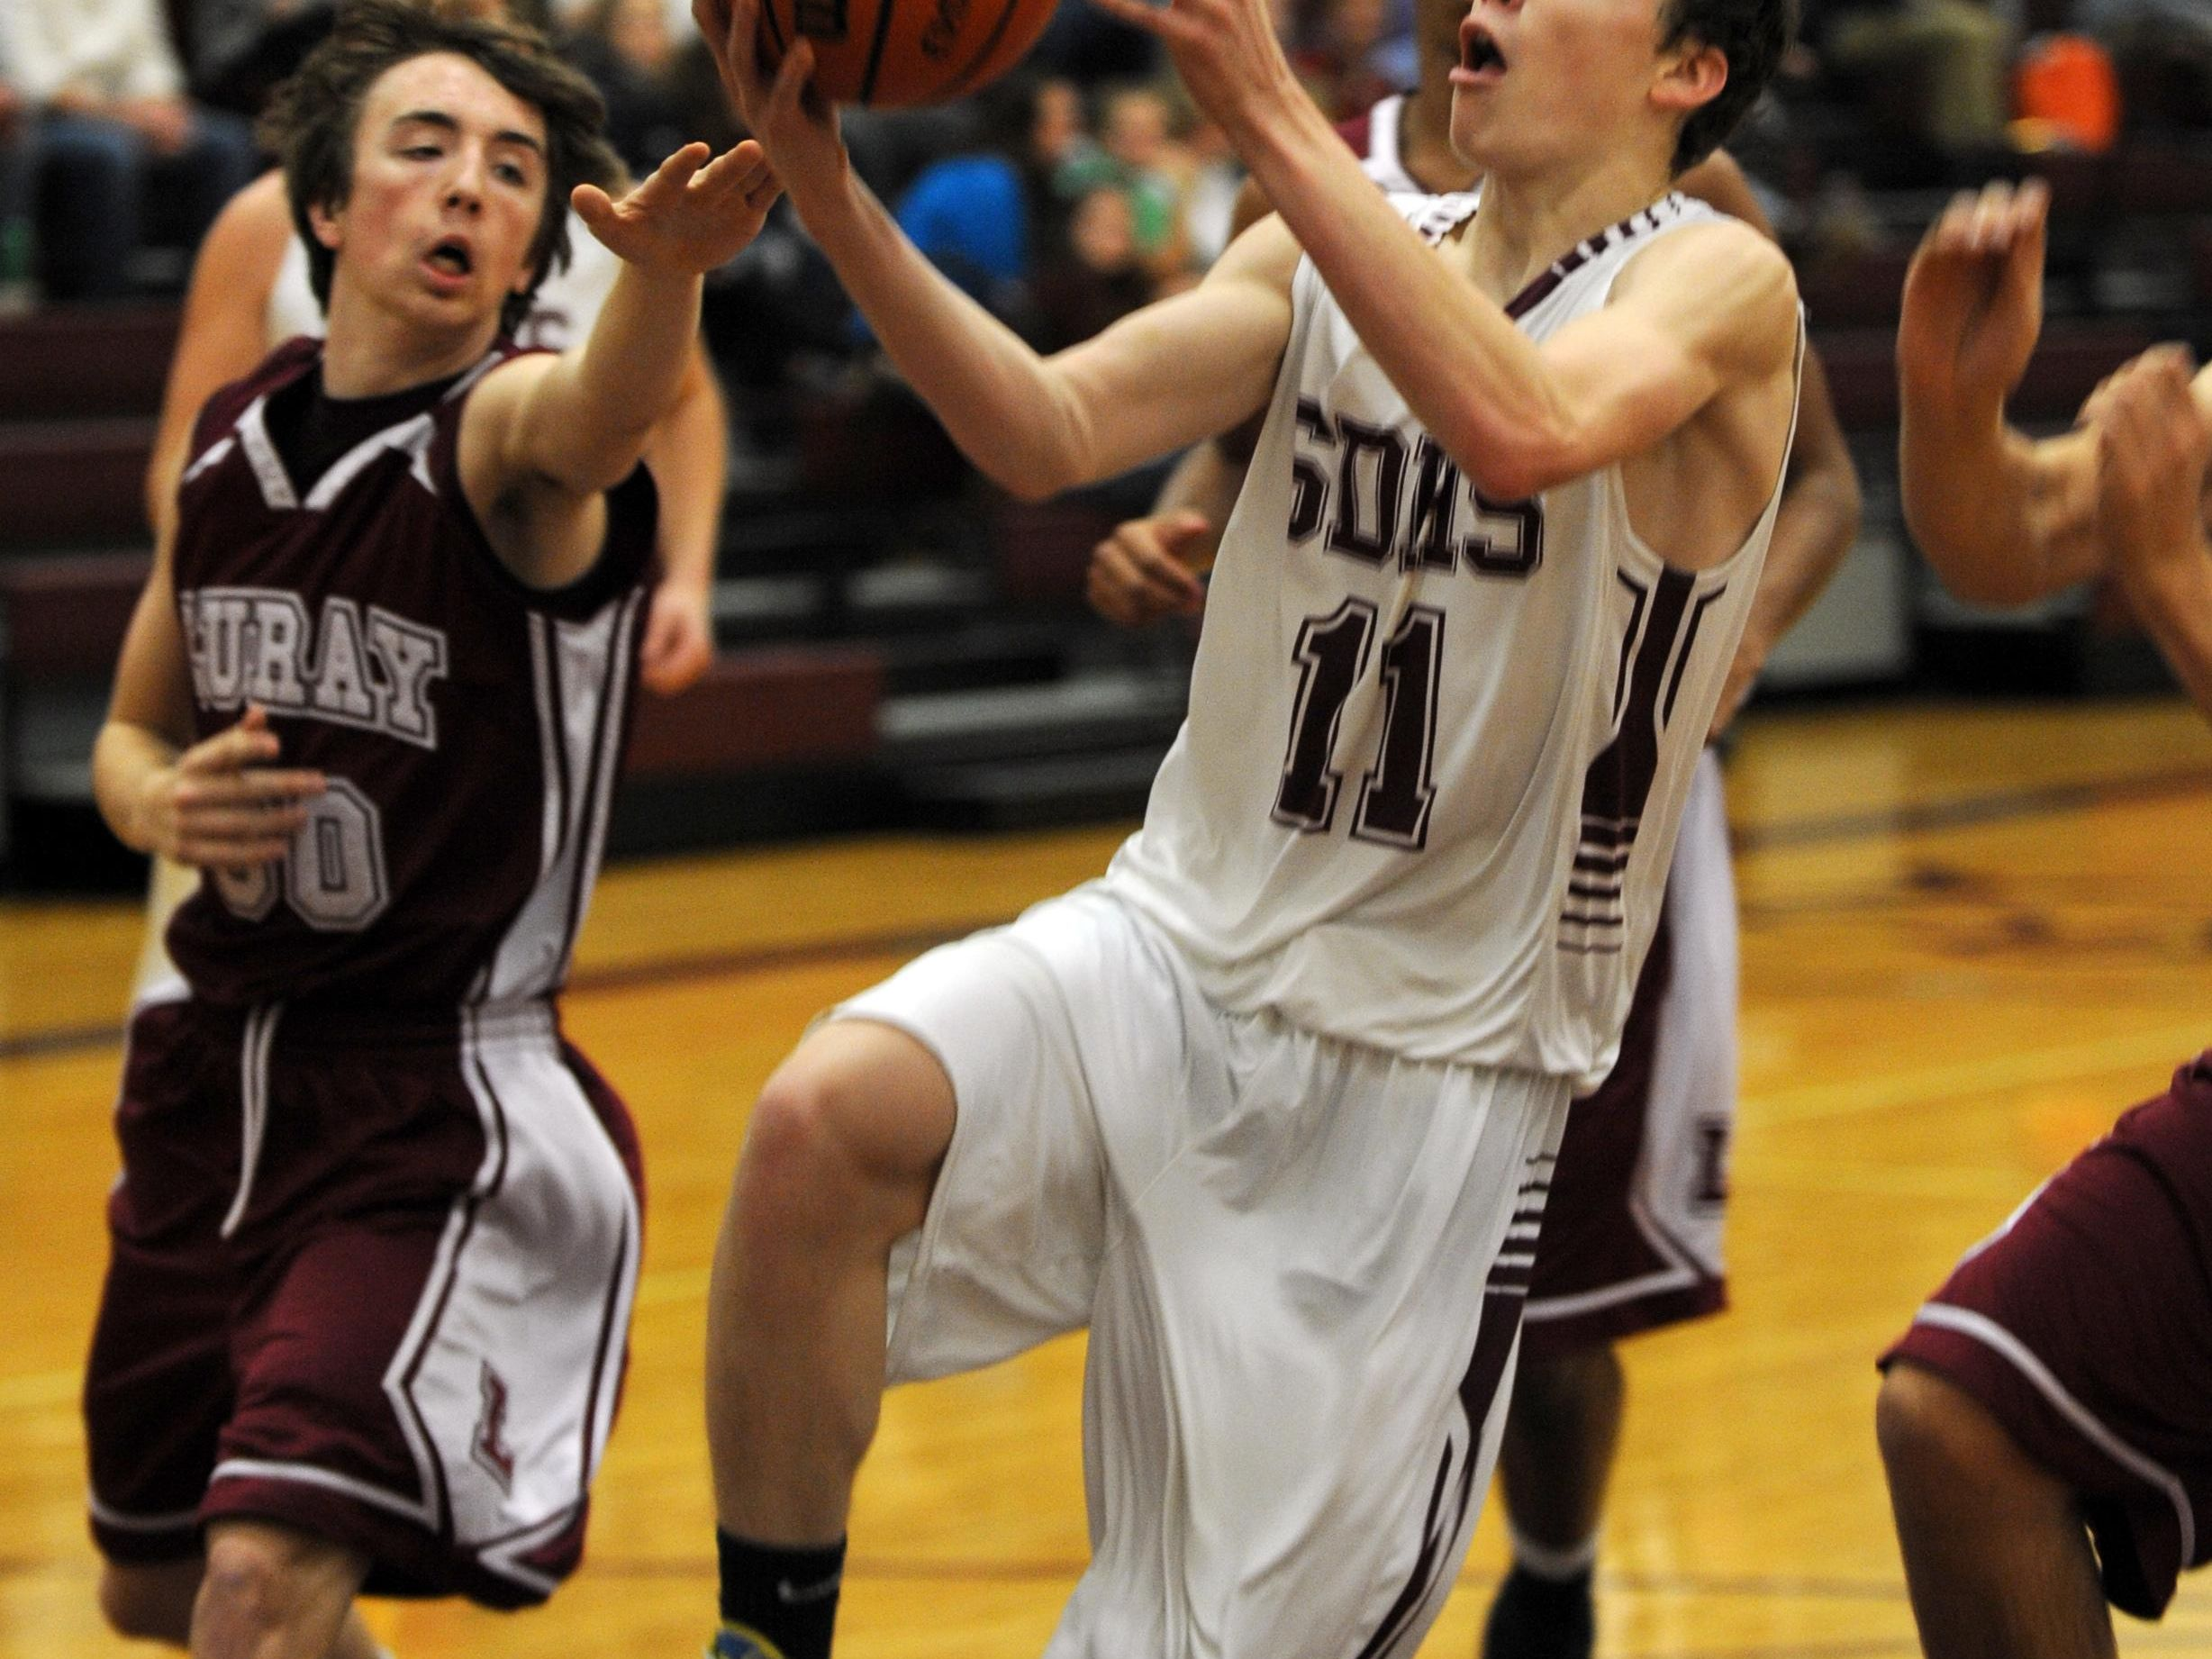 Stuarts Draft's #11, Evan Burgener drives to the basket past Luray's #00, Trea Atkins at Stuart Draft High School during their boys basketball game Monday, Jan. 11, 2016